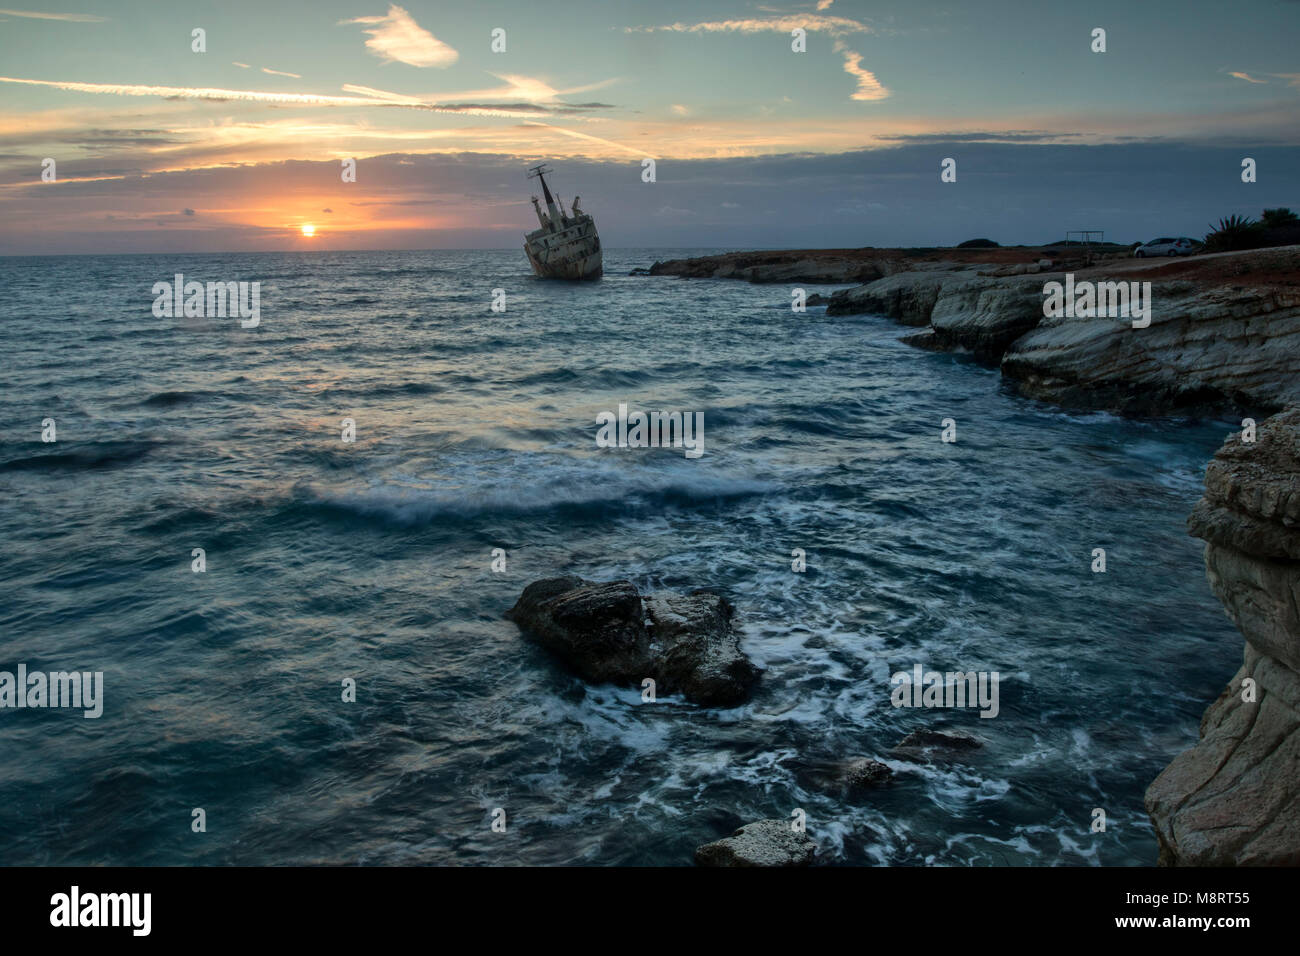 Sunset over the Edro 3  on the mediterranean coast of Pegeia, Paphos, Cyprus - Stock Image